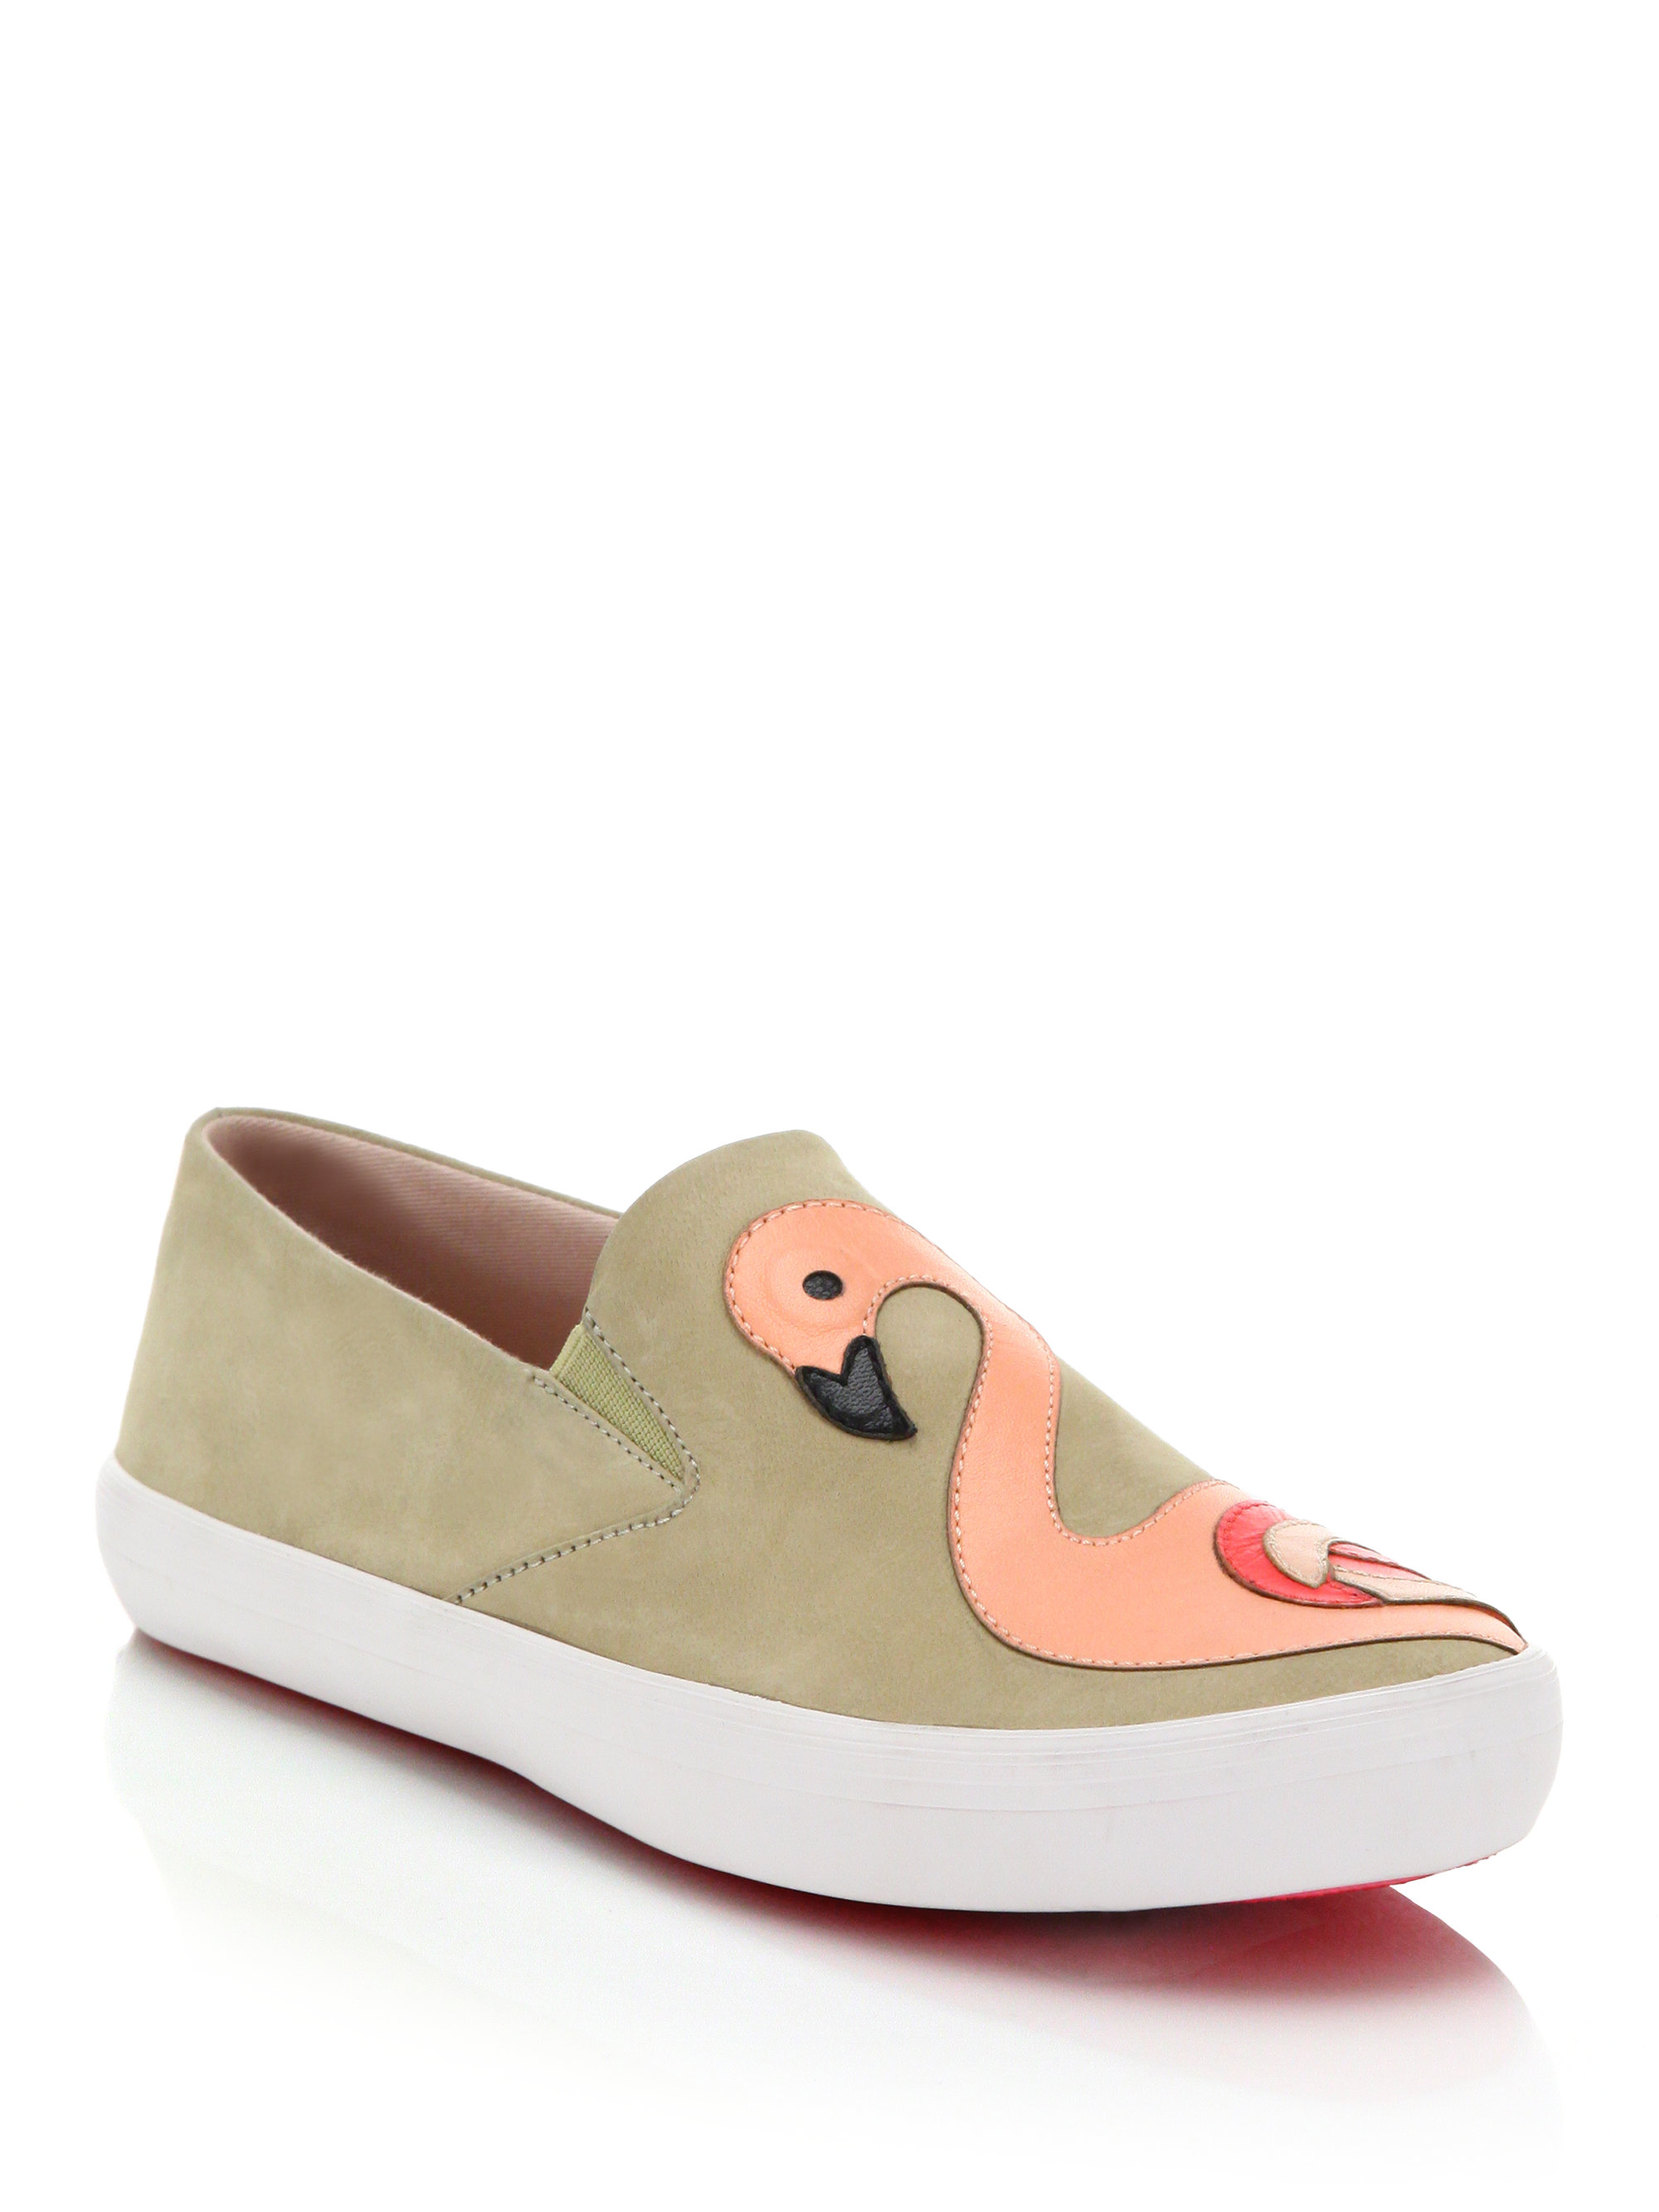 c00c33be9426 Lyst - Kate Spade Selma Flamingo-paneled Leather Slip-on Sneakers in ...